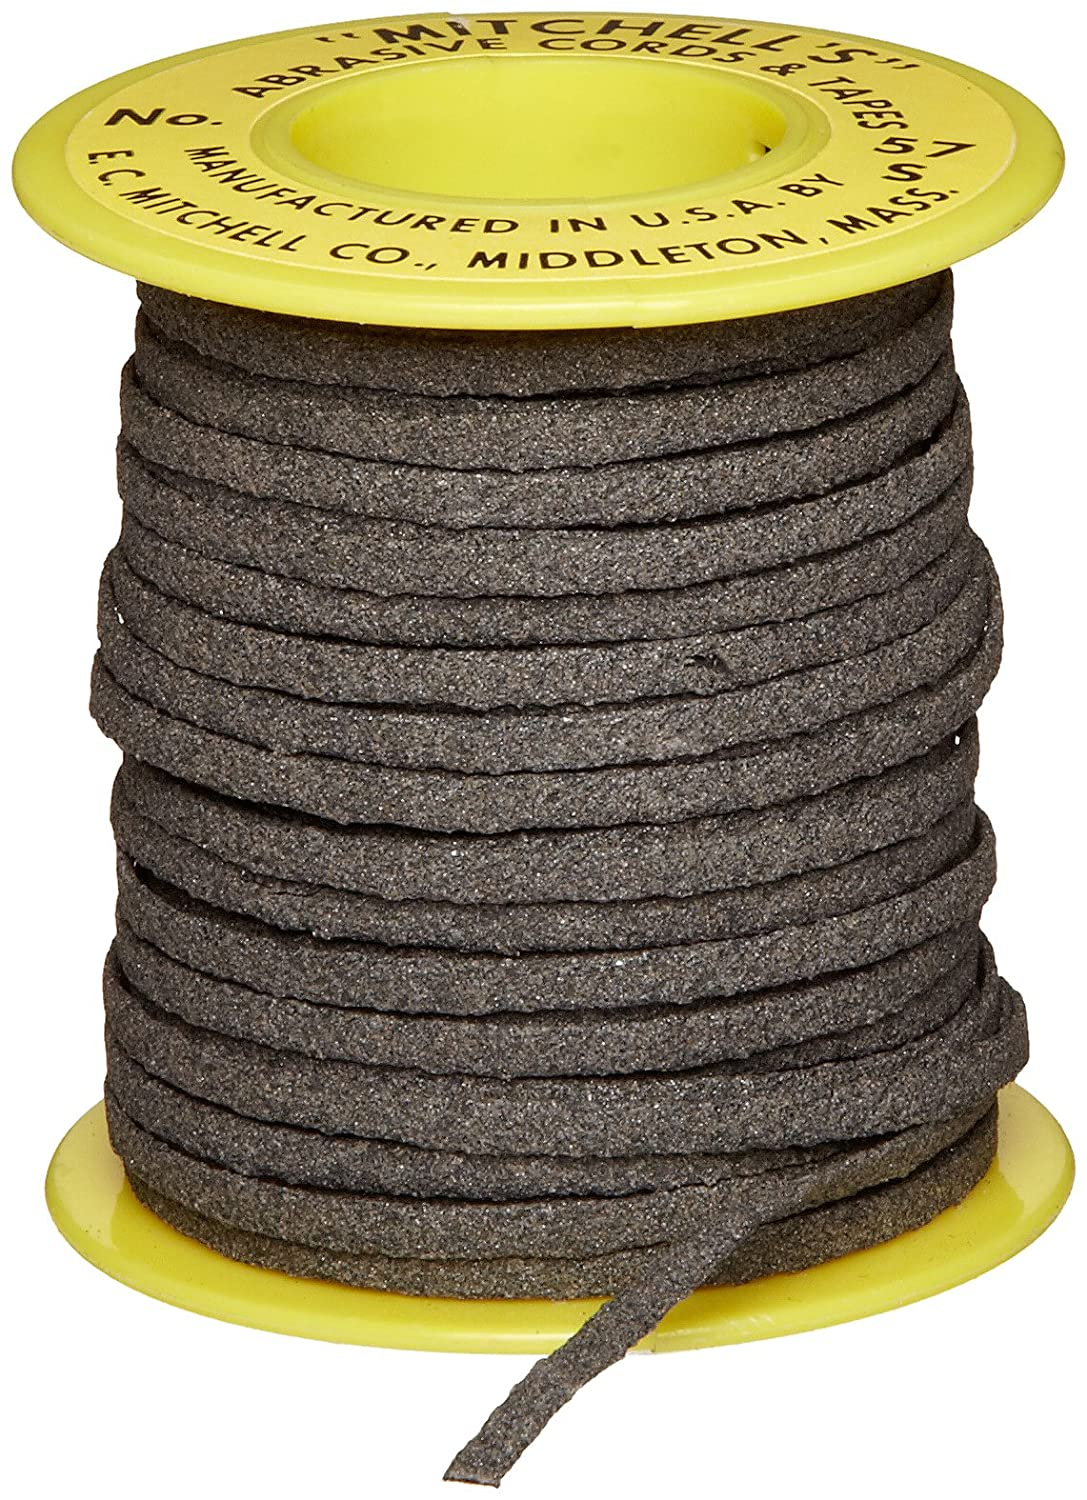 Silicon Carbide 150 Grit 1//8 Wide x 25 Feet Mitchell Abrasives 57-S Flat Abrasive Tape